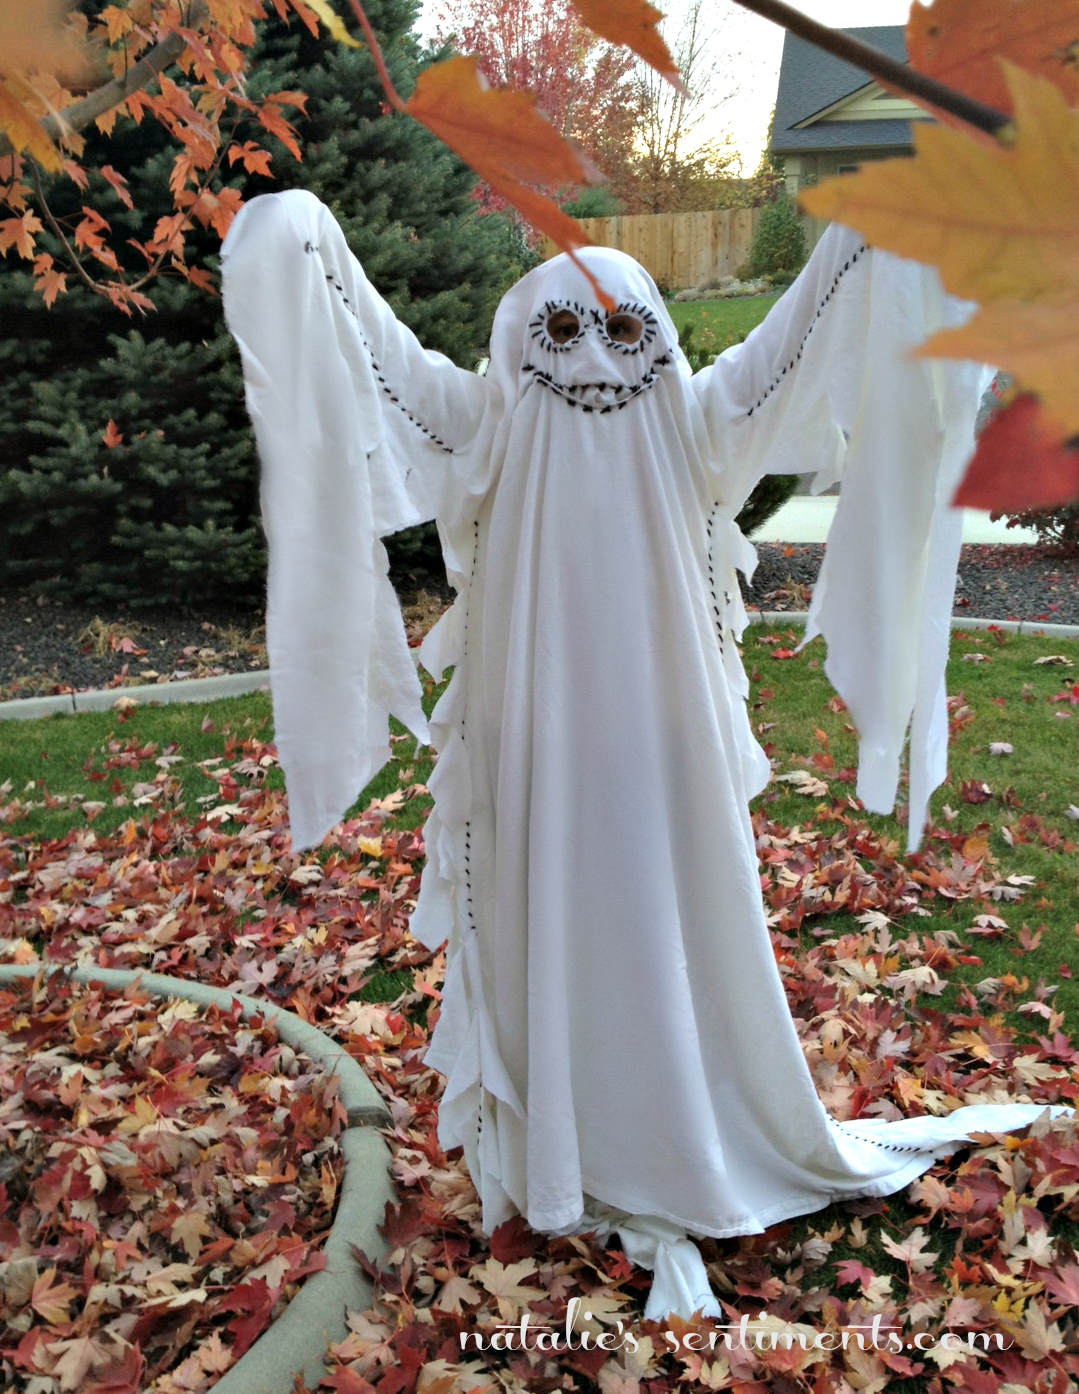 Pretty much the coolest ghost costume Iu0027ve ever seen. & natalieu0027s sentiments: 100% Dad-Made Costume Reveal!